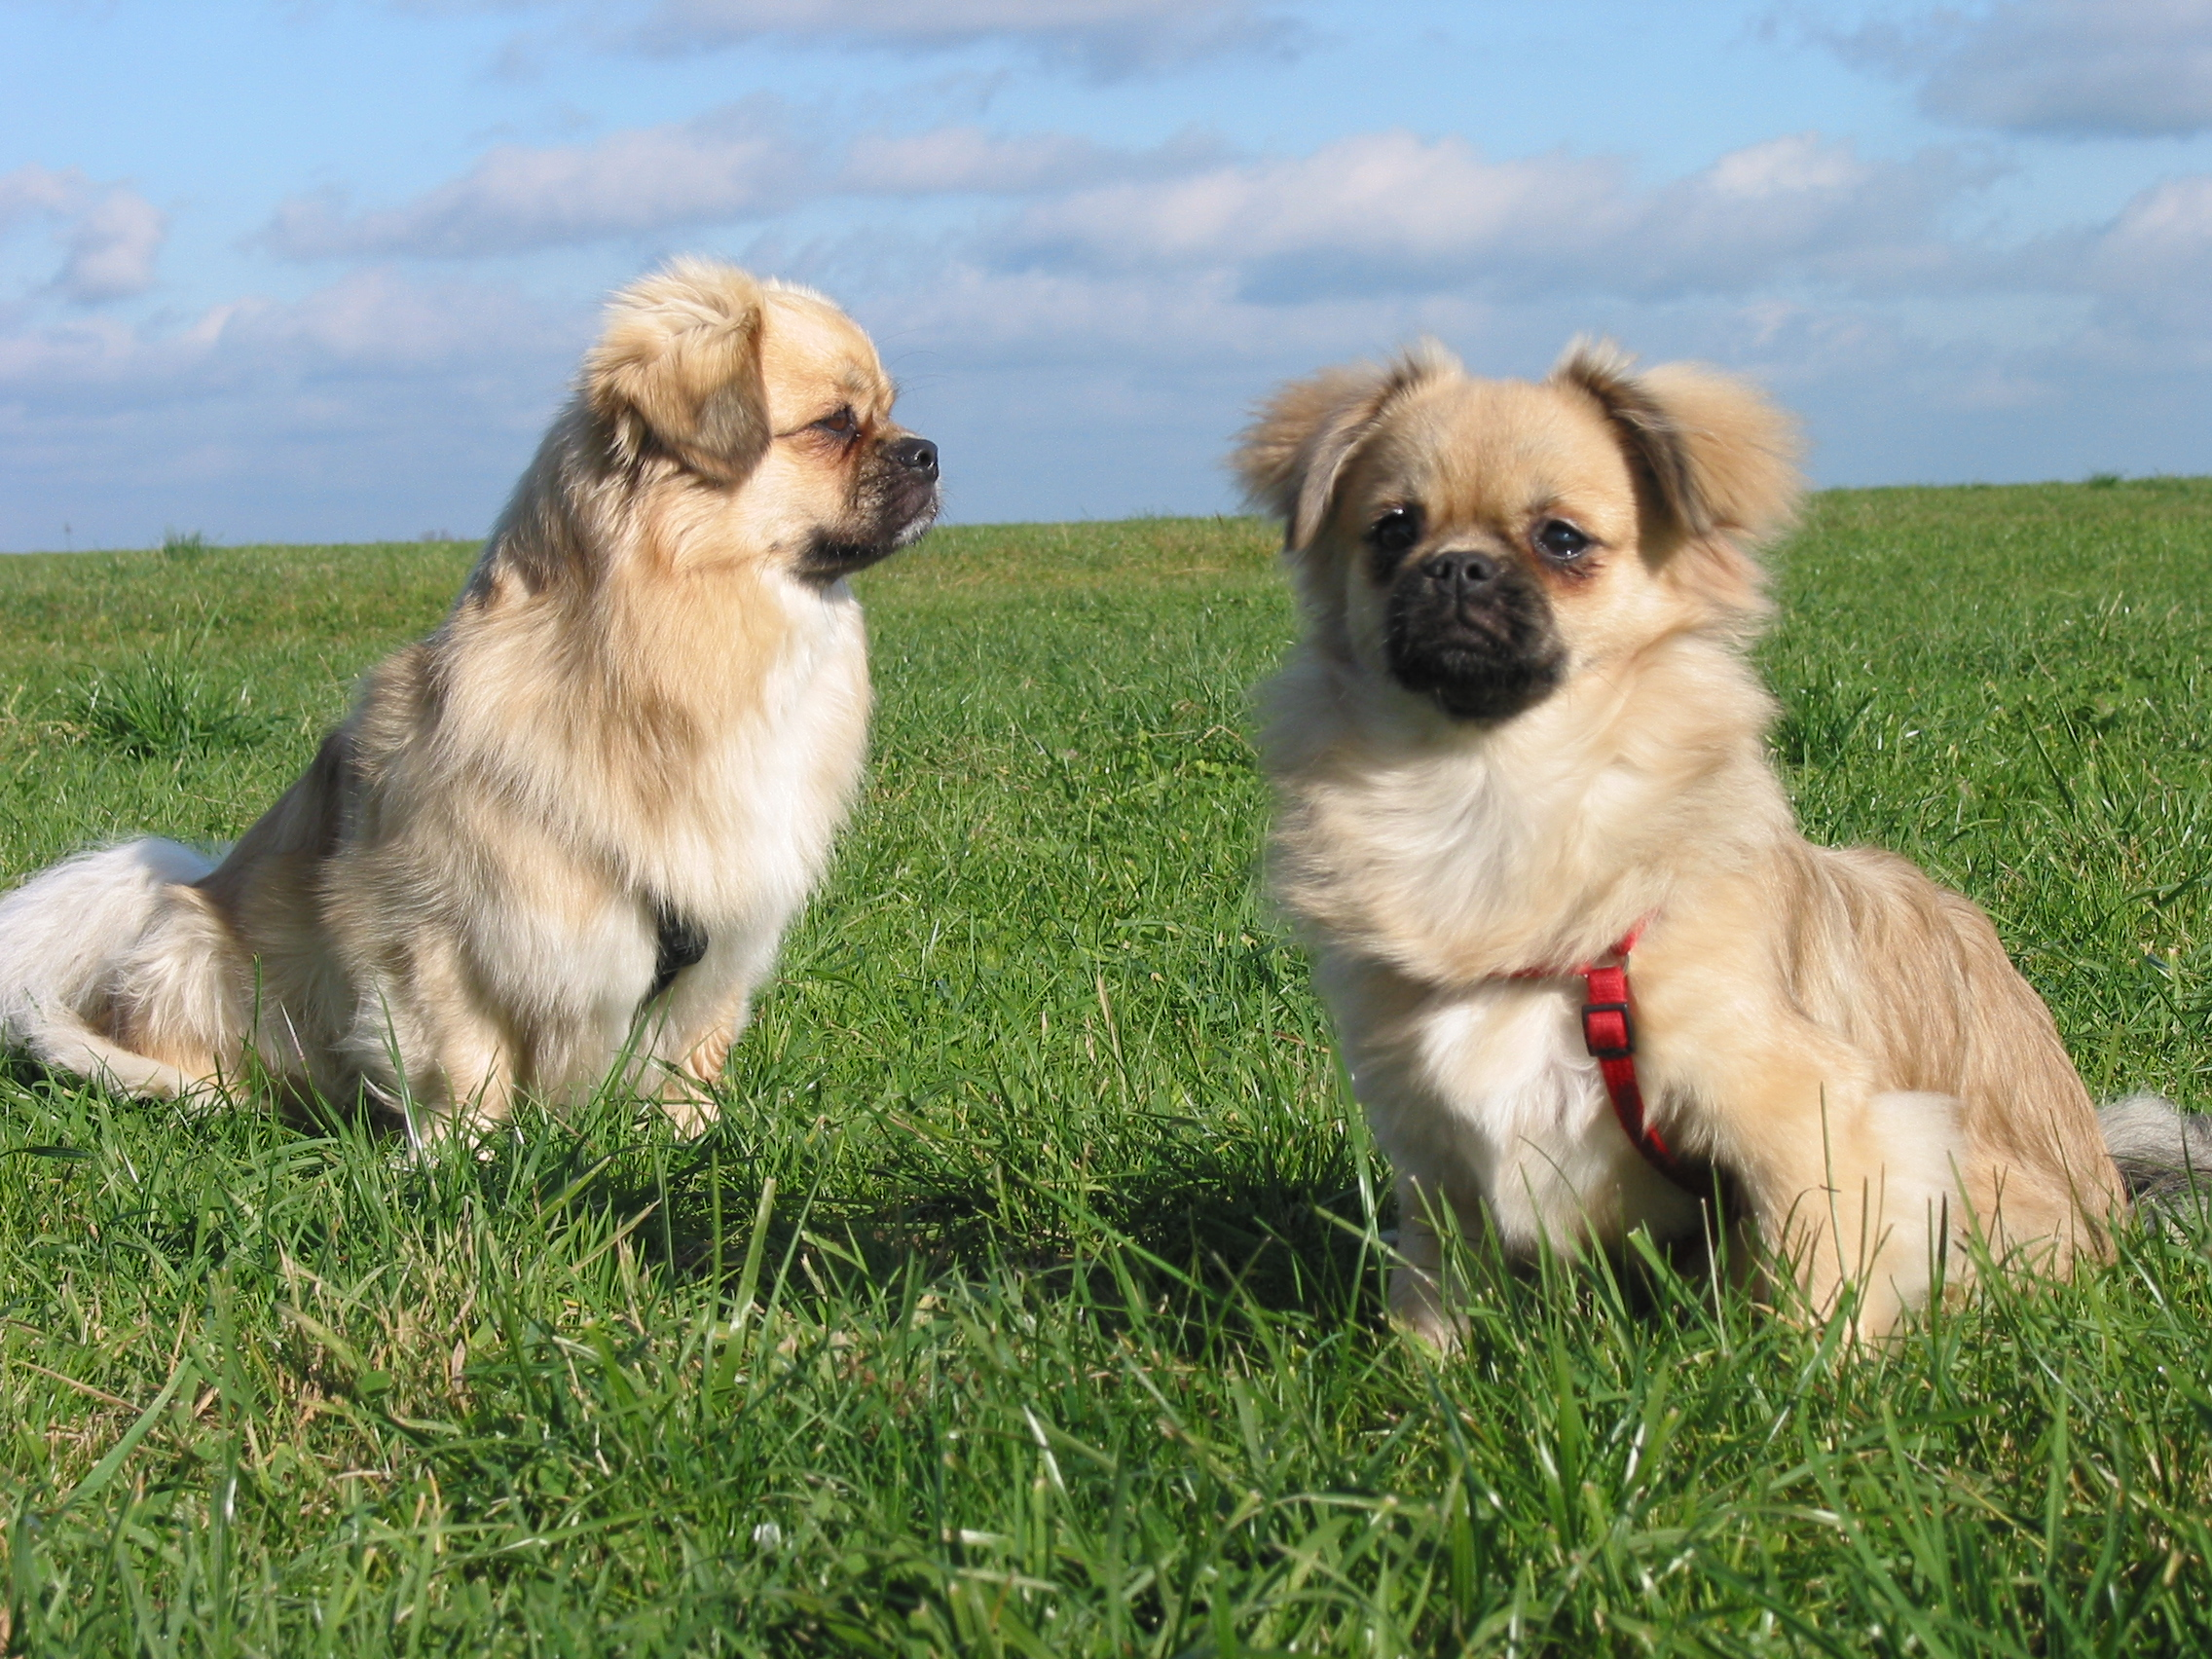 Two cute Tibetan Spaniel dogs wallpaper